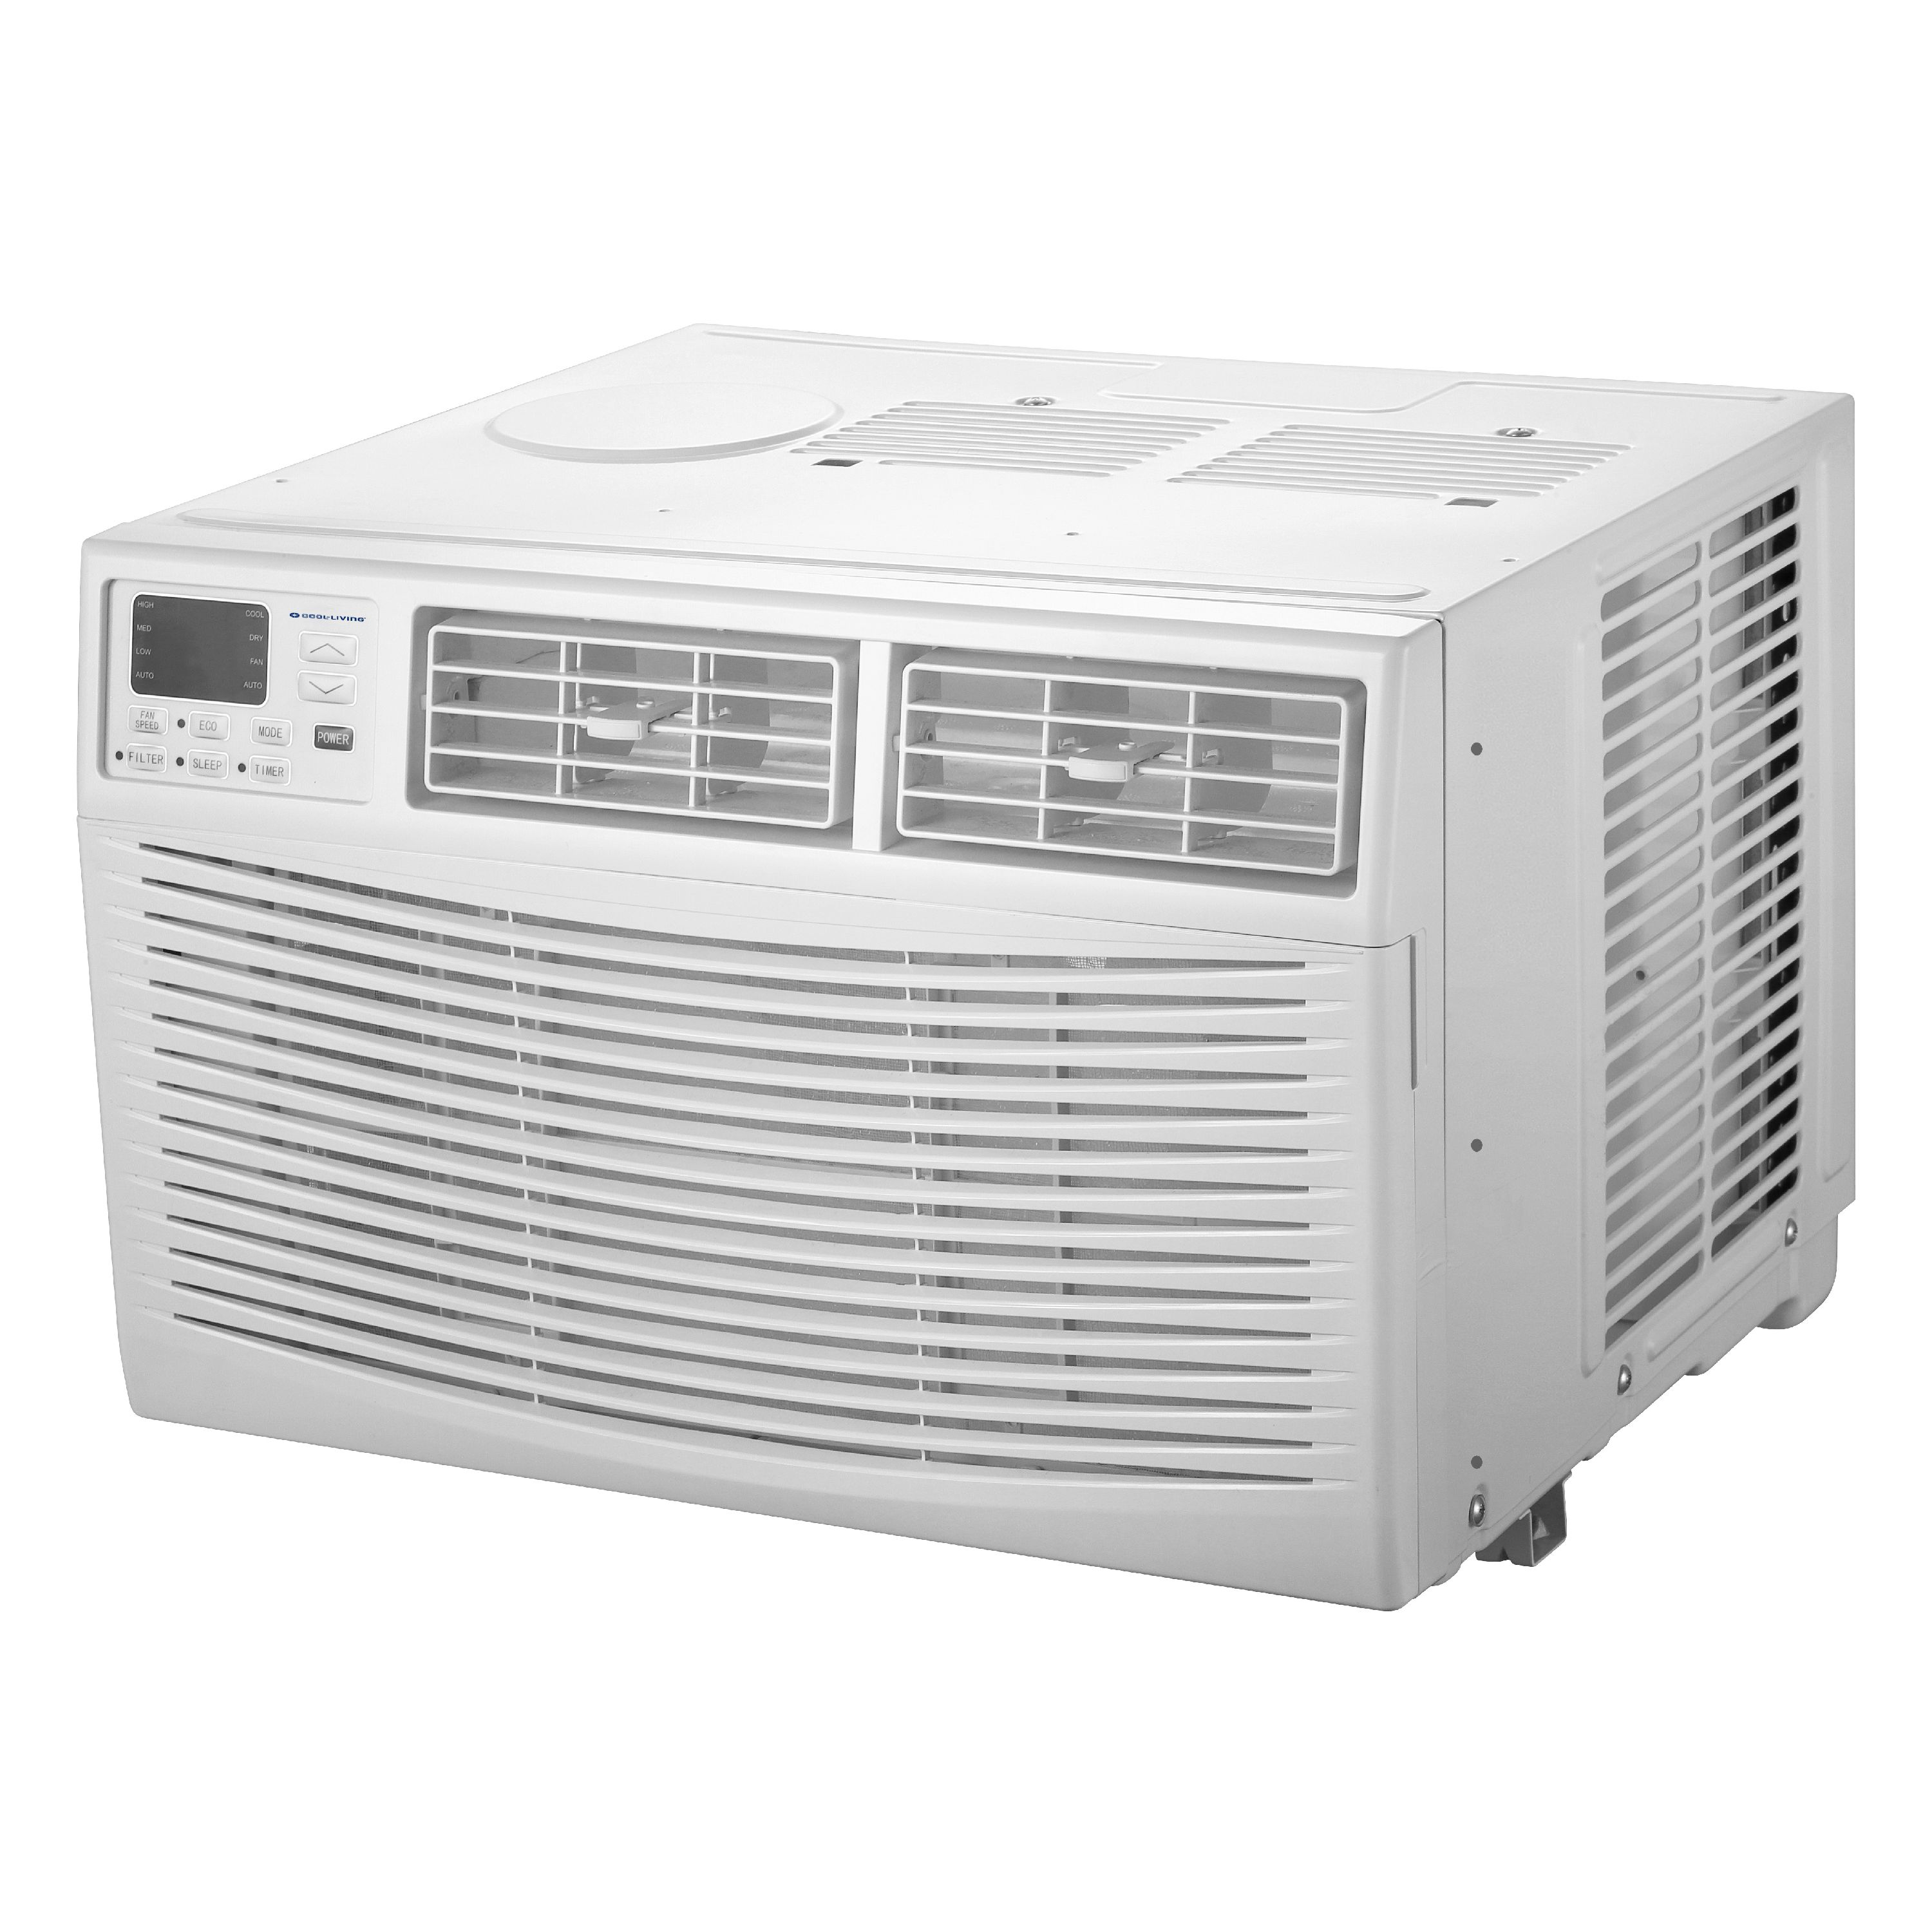 220v window air conditioner coolliving 24000 btu window room air conditioner with remote 220v